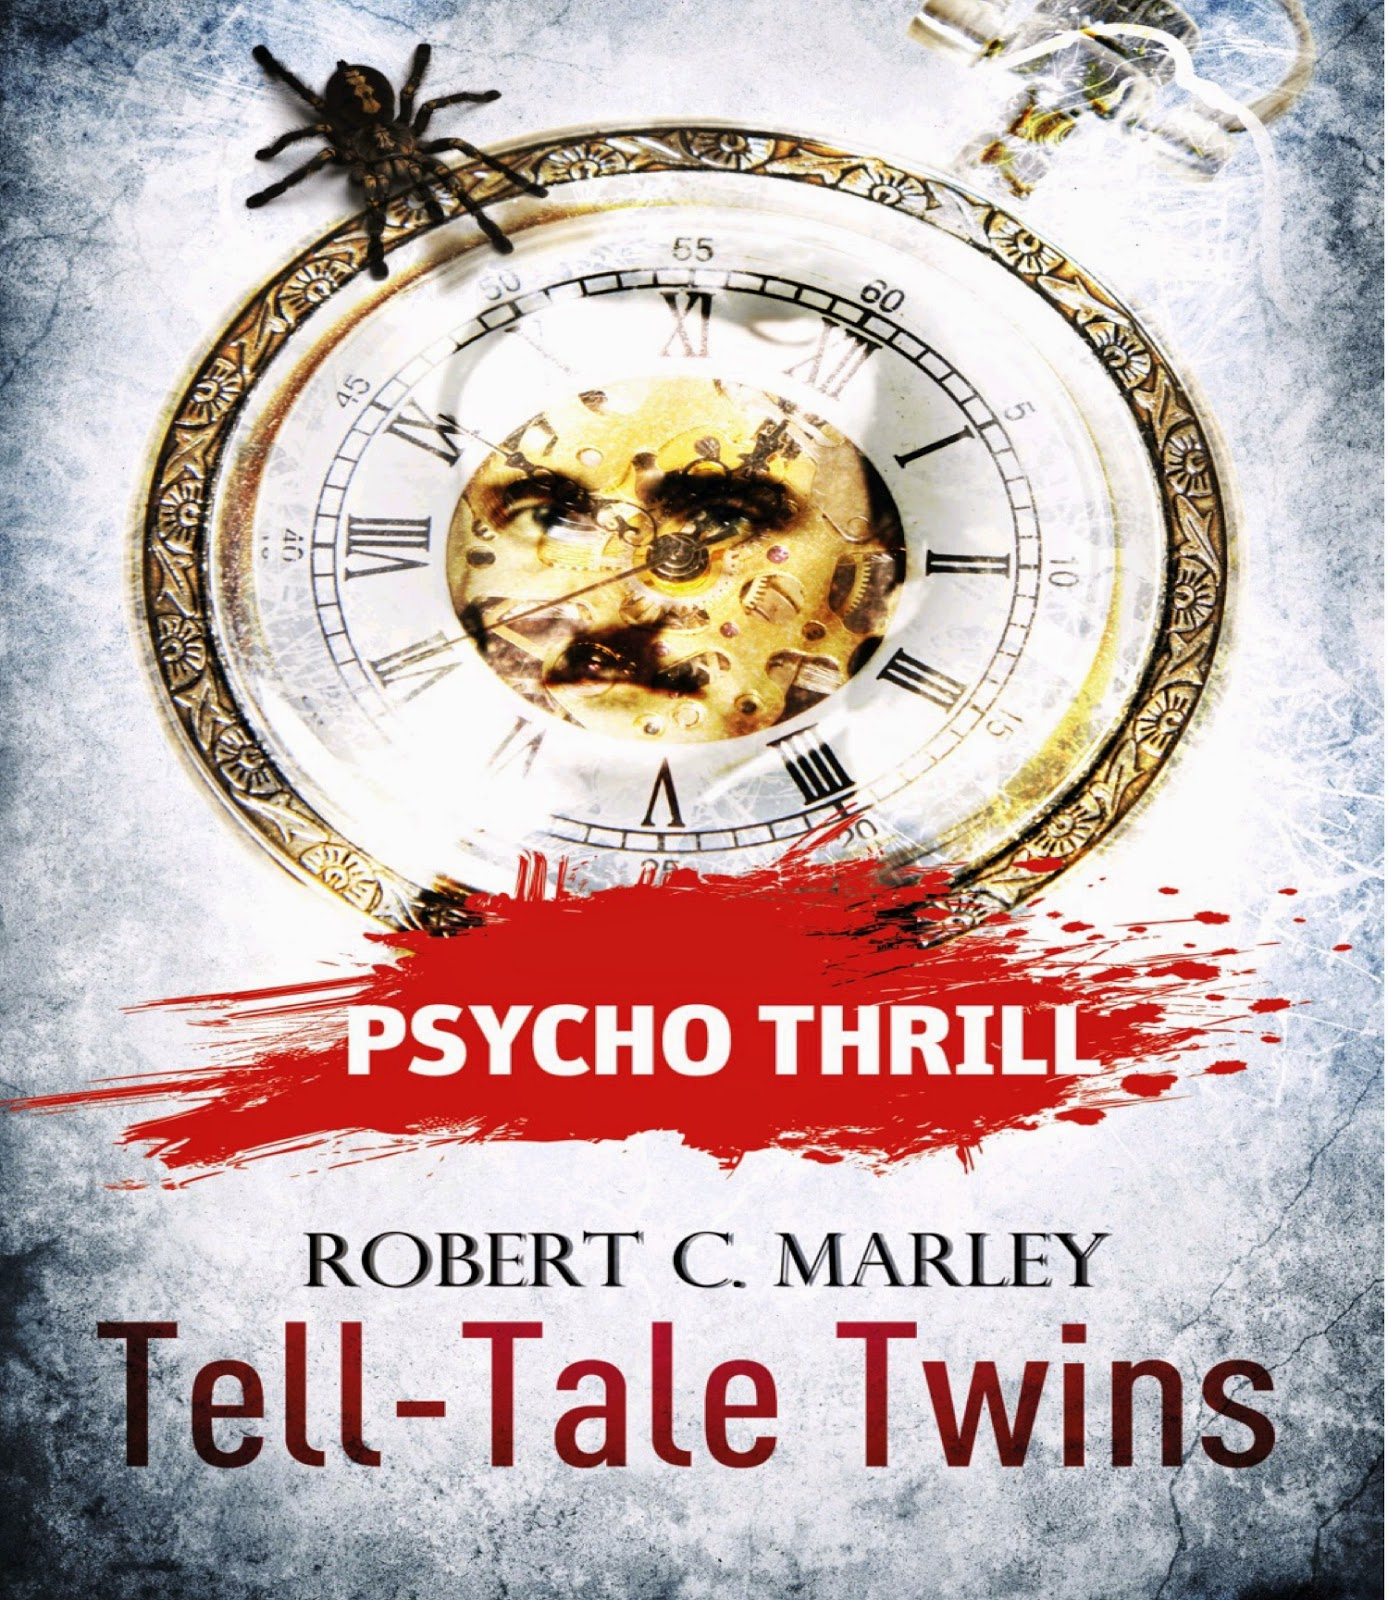 http://kristinehallways.blogspot.com/2014/10/psycho-thrill-tell-tale-twins.html